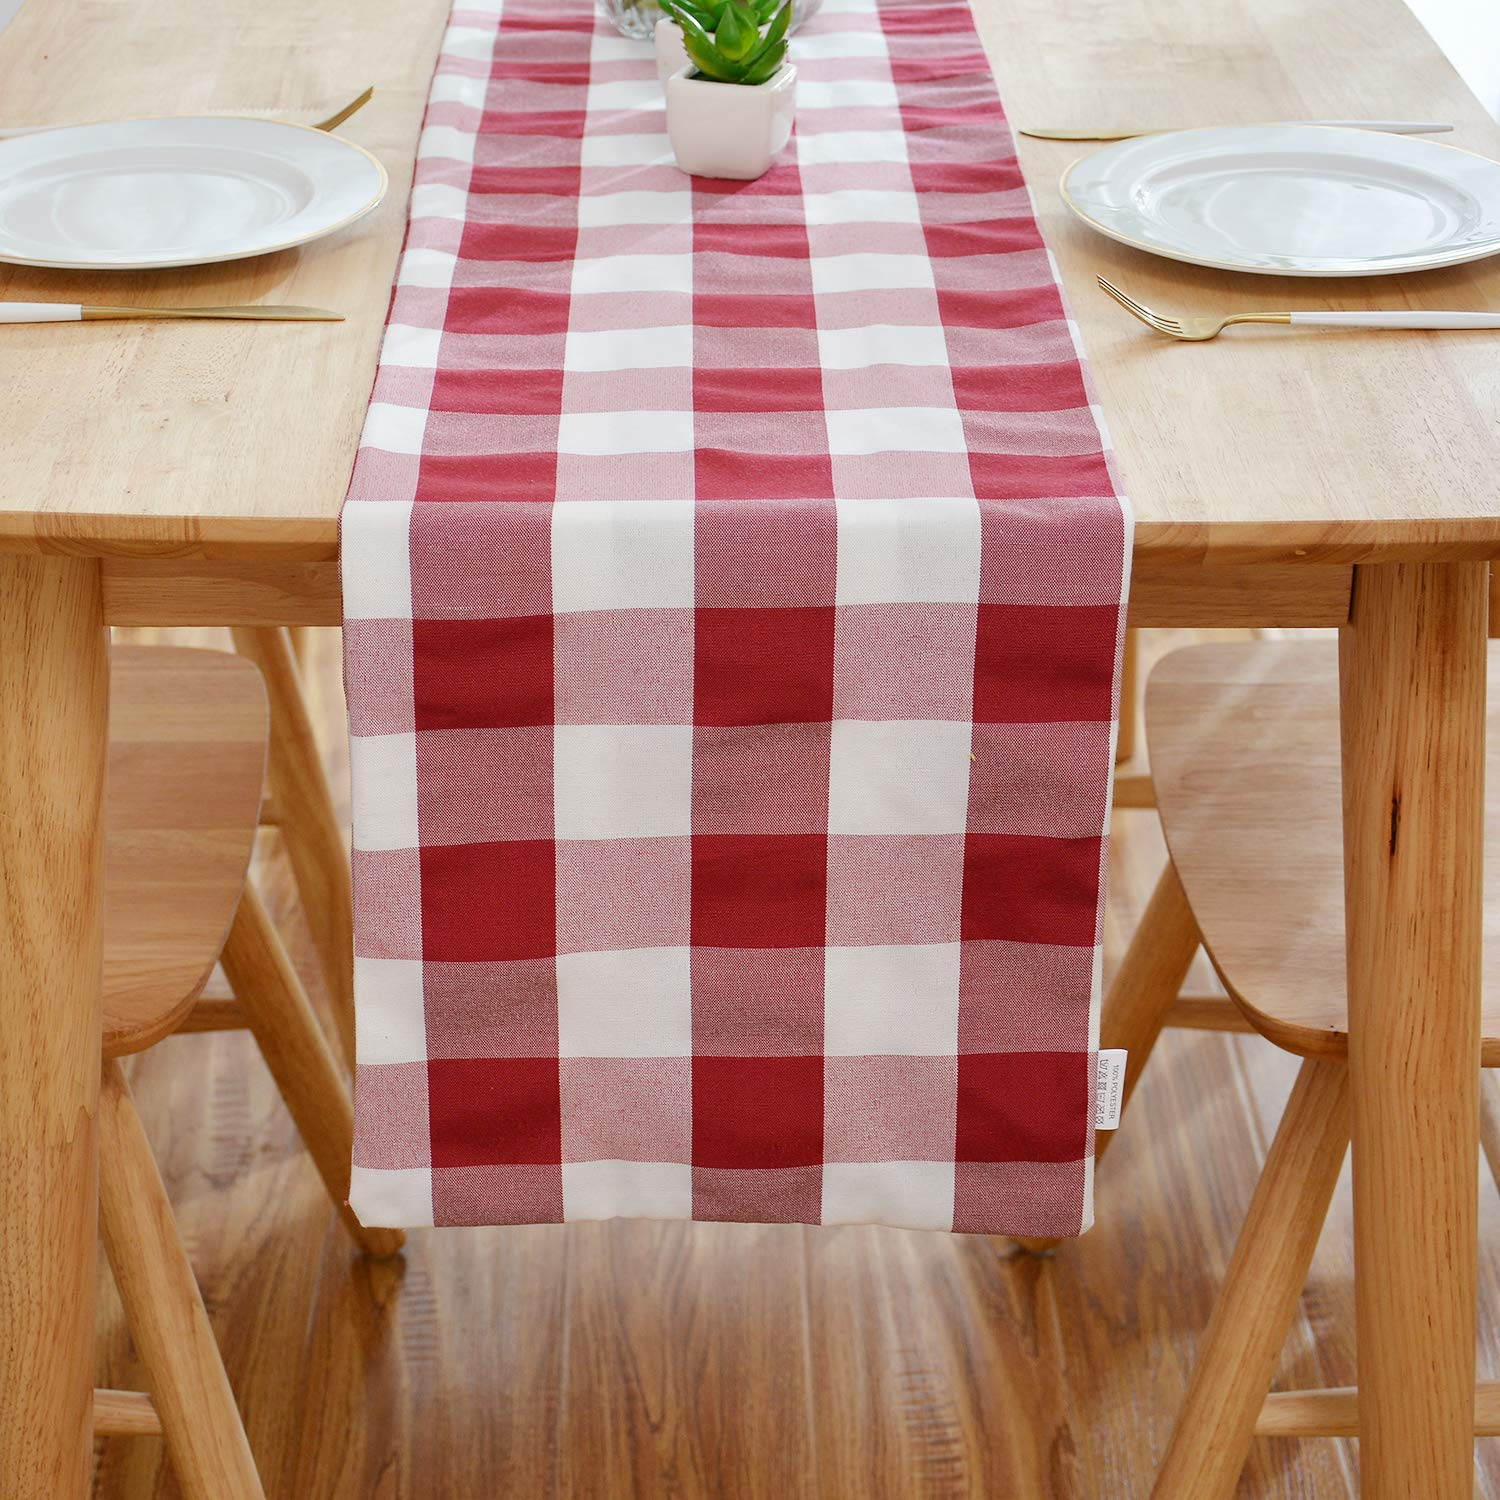 natus weaver red white buffalo check table runner accent cloth side for family dinners gatherings indoor outdoor parties everyday use pier one seat cushions patterns mirror ikea